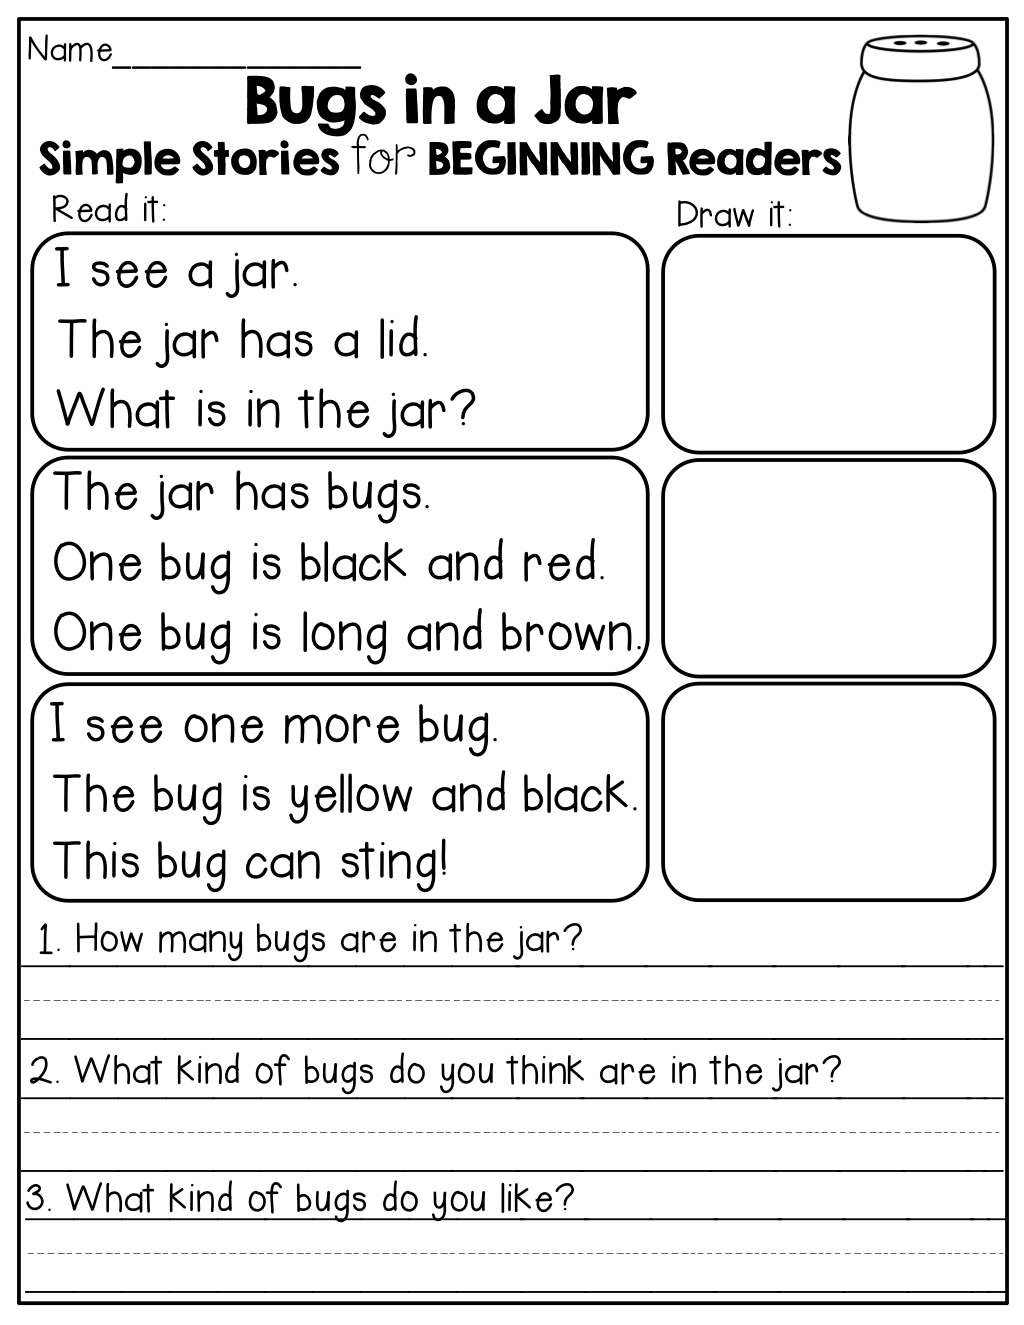 Kindergarten Preschool Reading Writing Worksheets Draw It